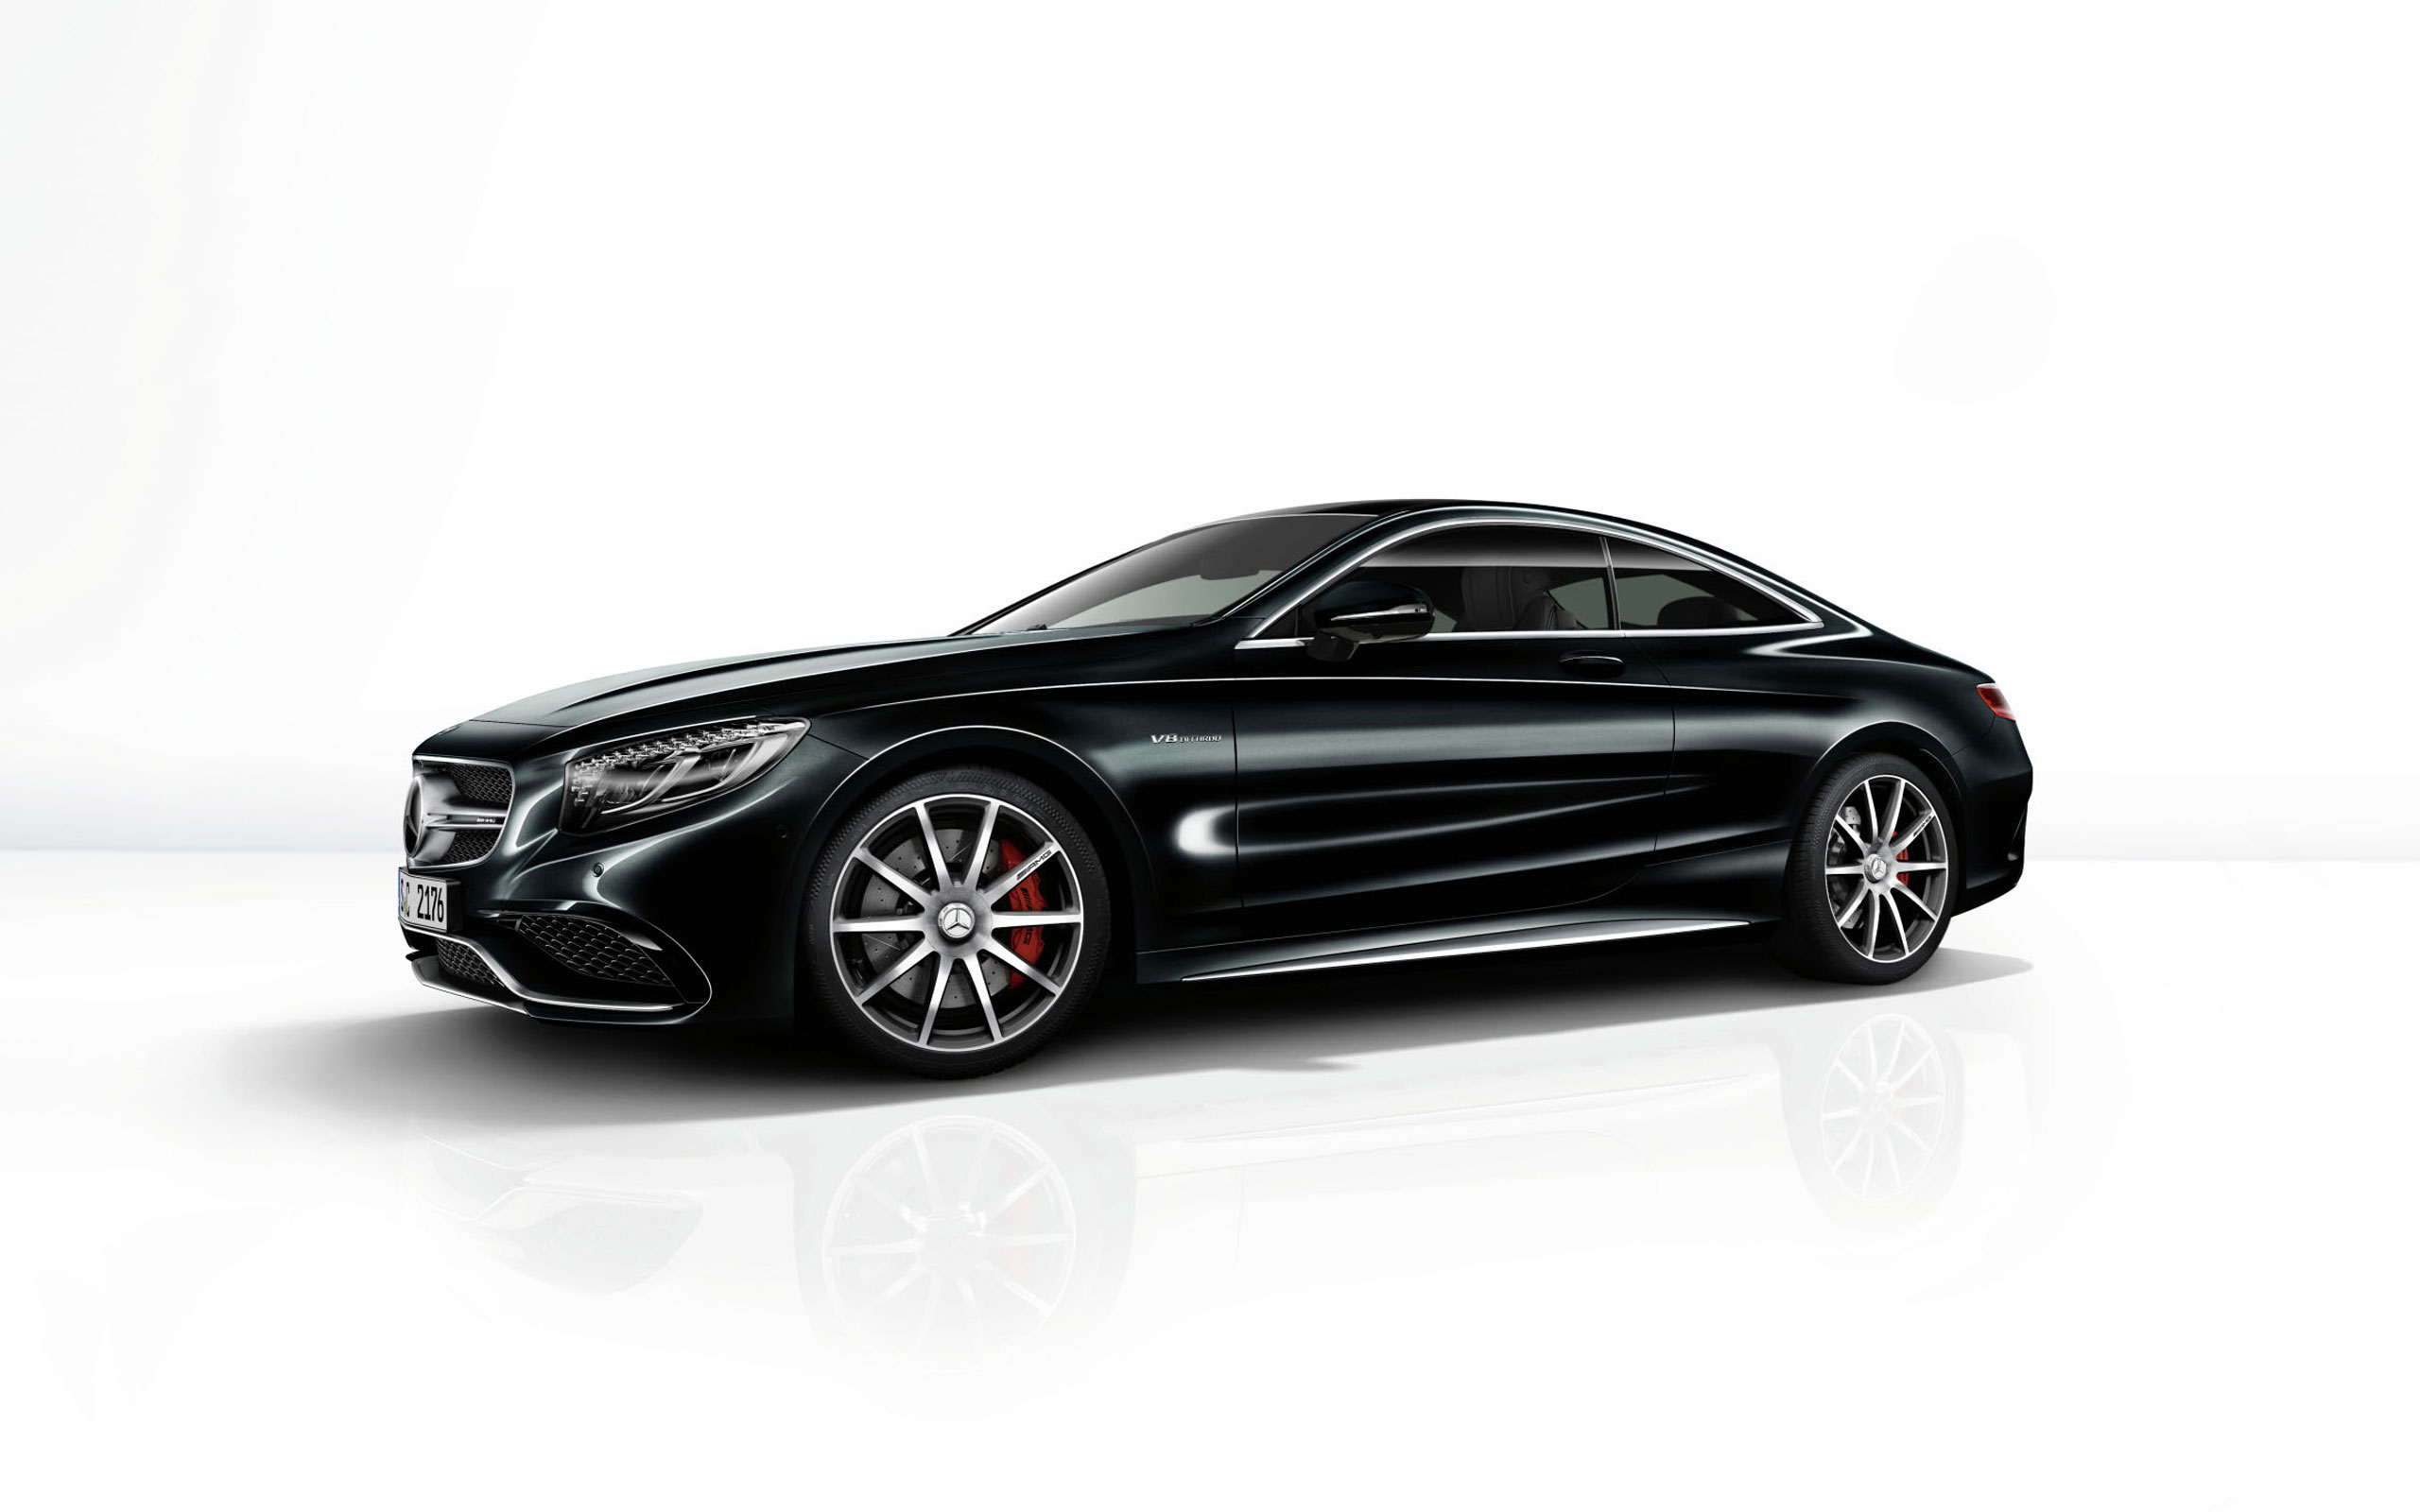 S 63 Amg Wallpaper: Mercedes-Benz Amg S63 Wallpapers High Quality